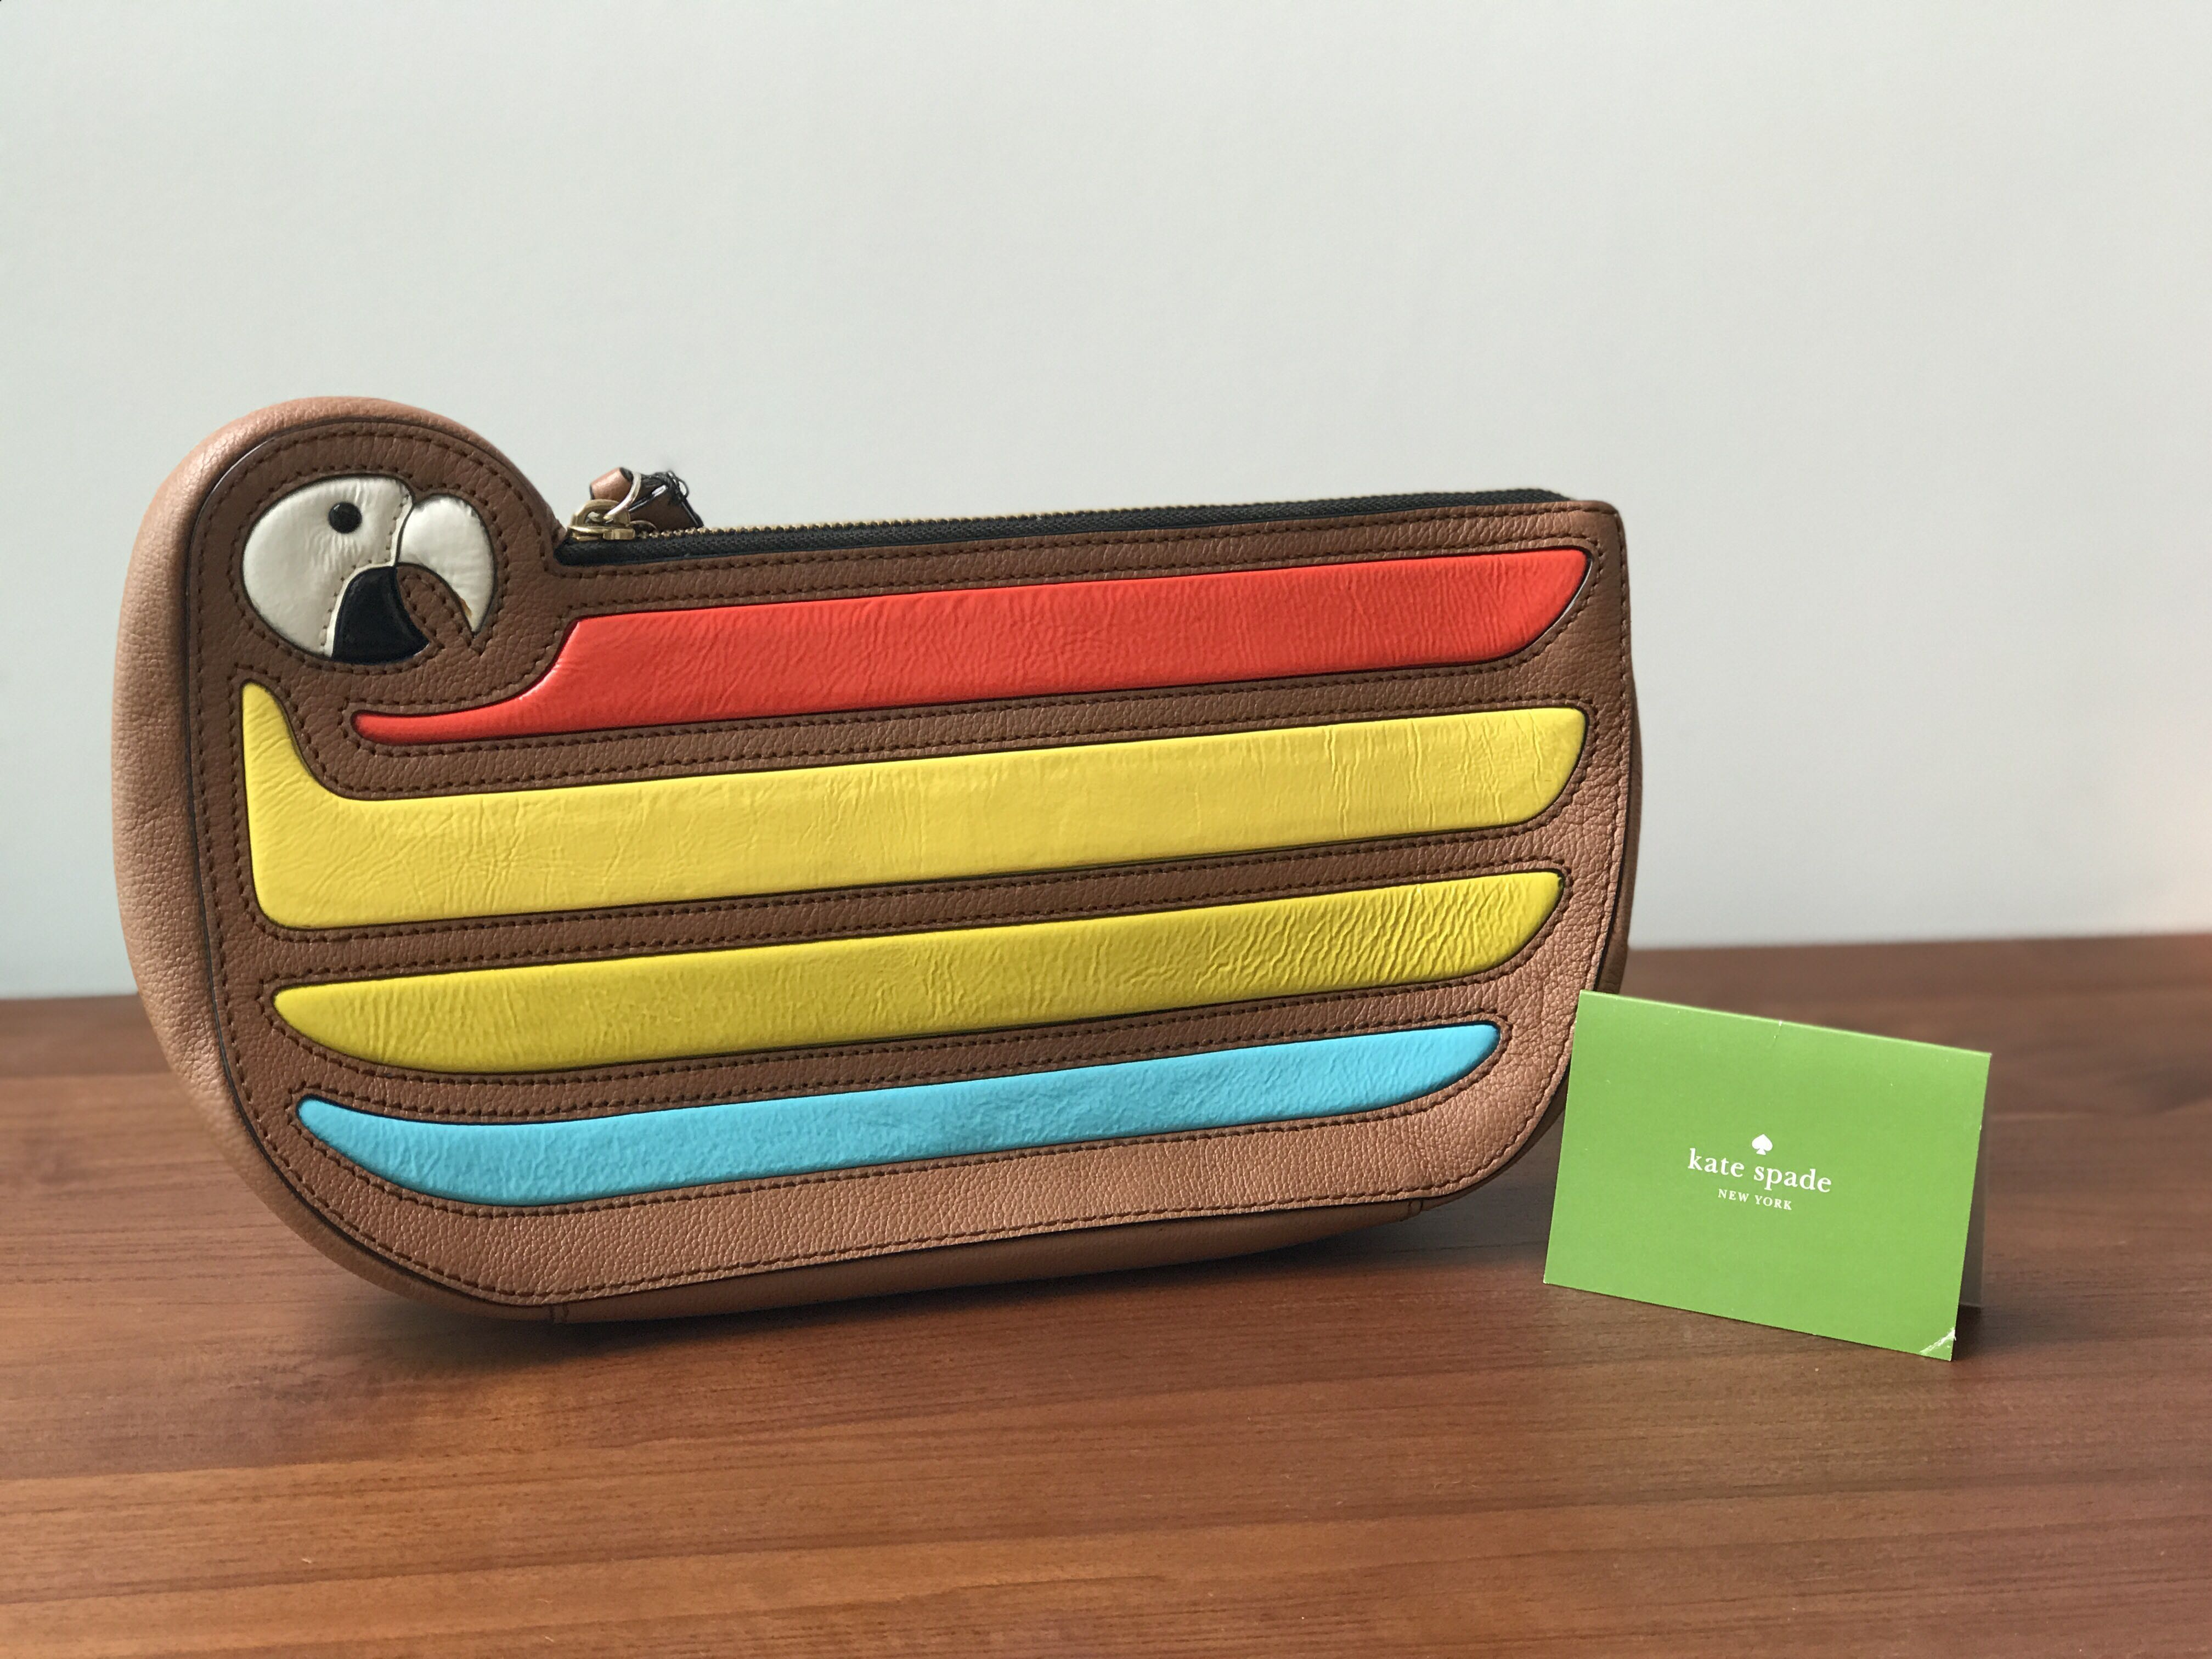 f41760de66f2 Authentic whimsical Kate Spade reversible clutch macaw parrot cay bird  leather clutch wristlet - lightly used